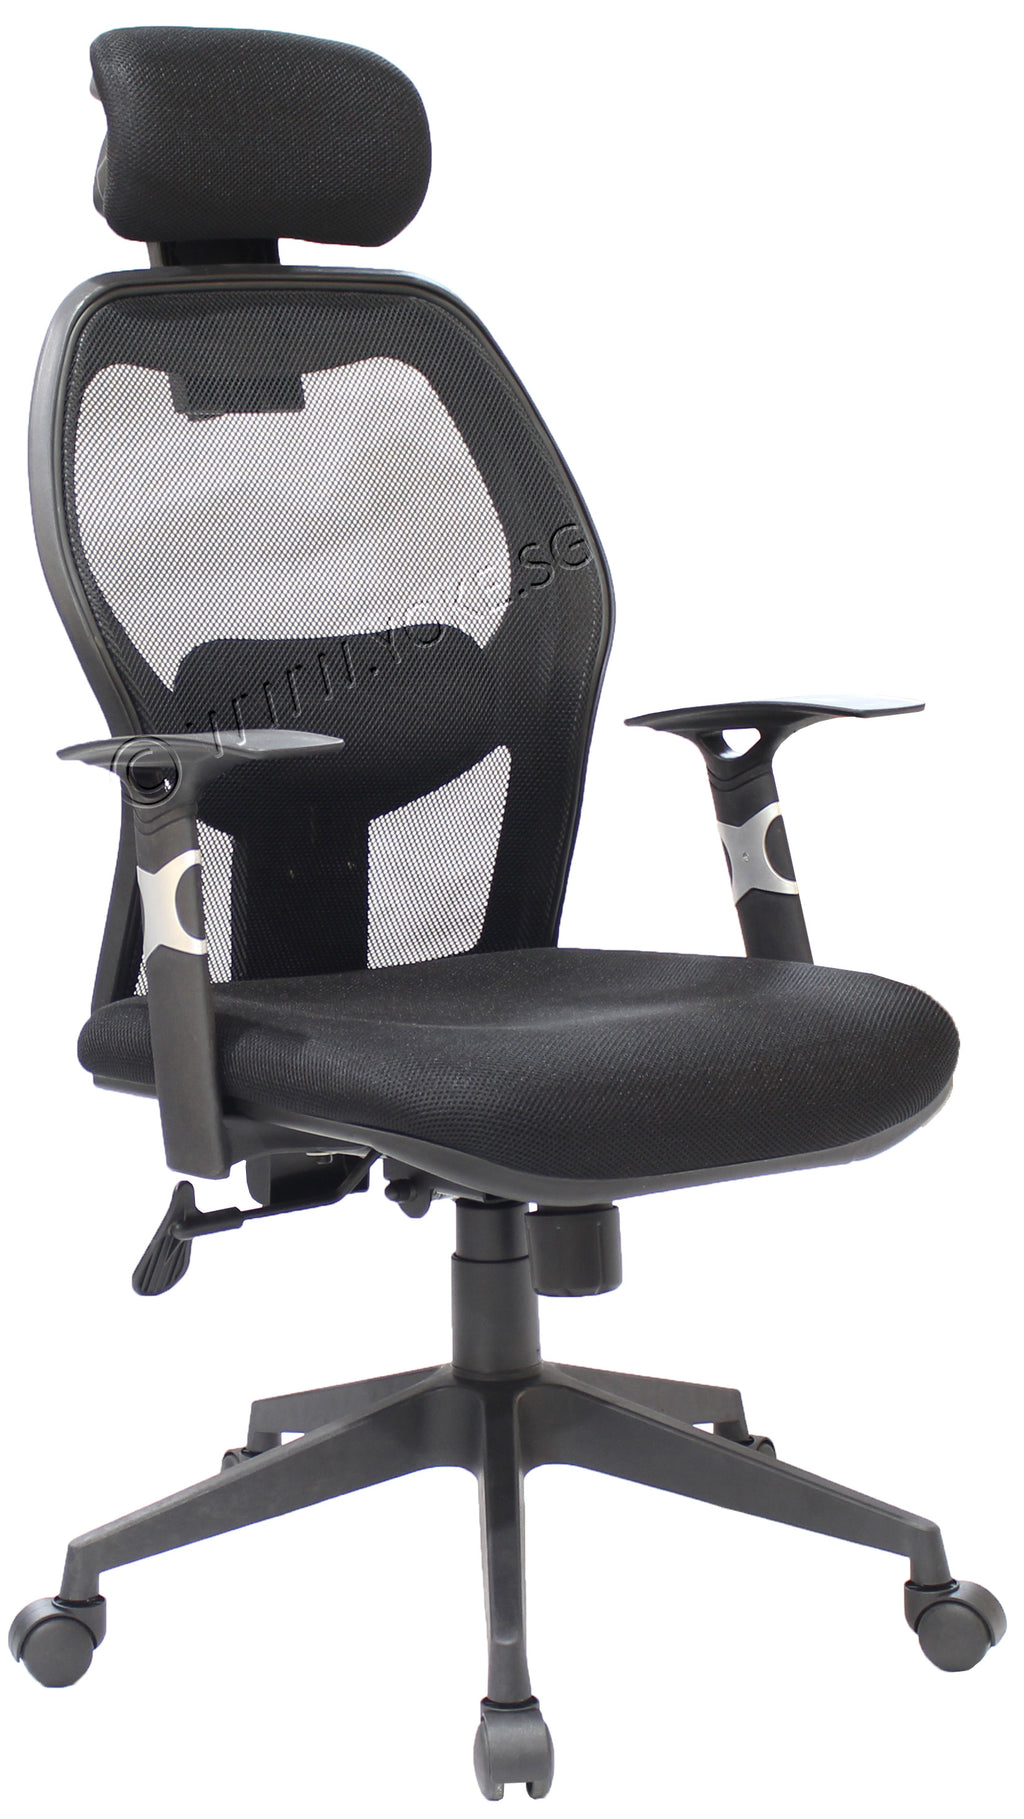 YOE 36 - Mesh Chair With Adjustable Headrest